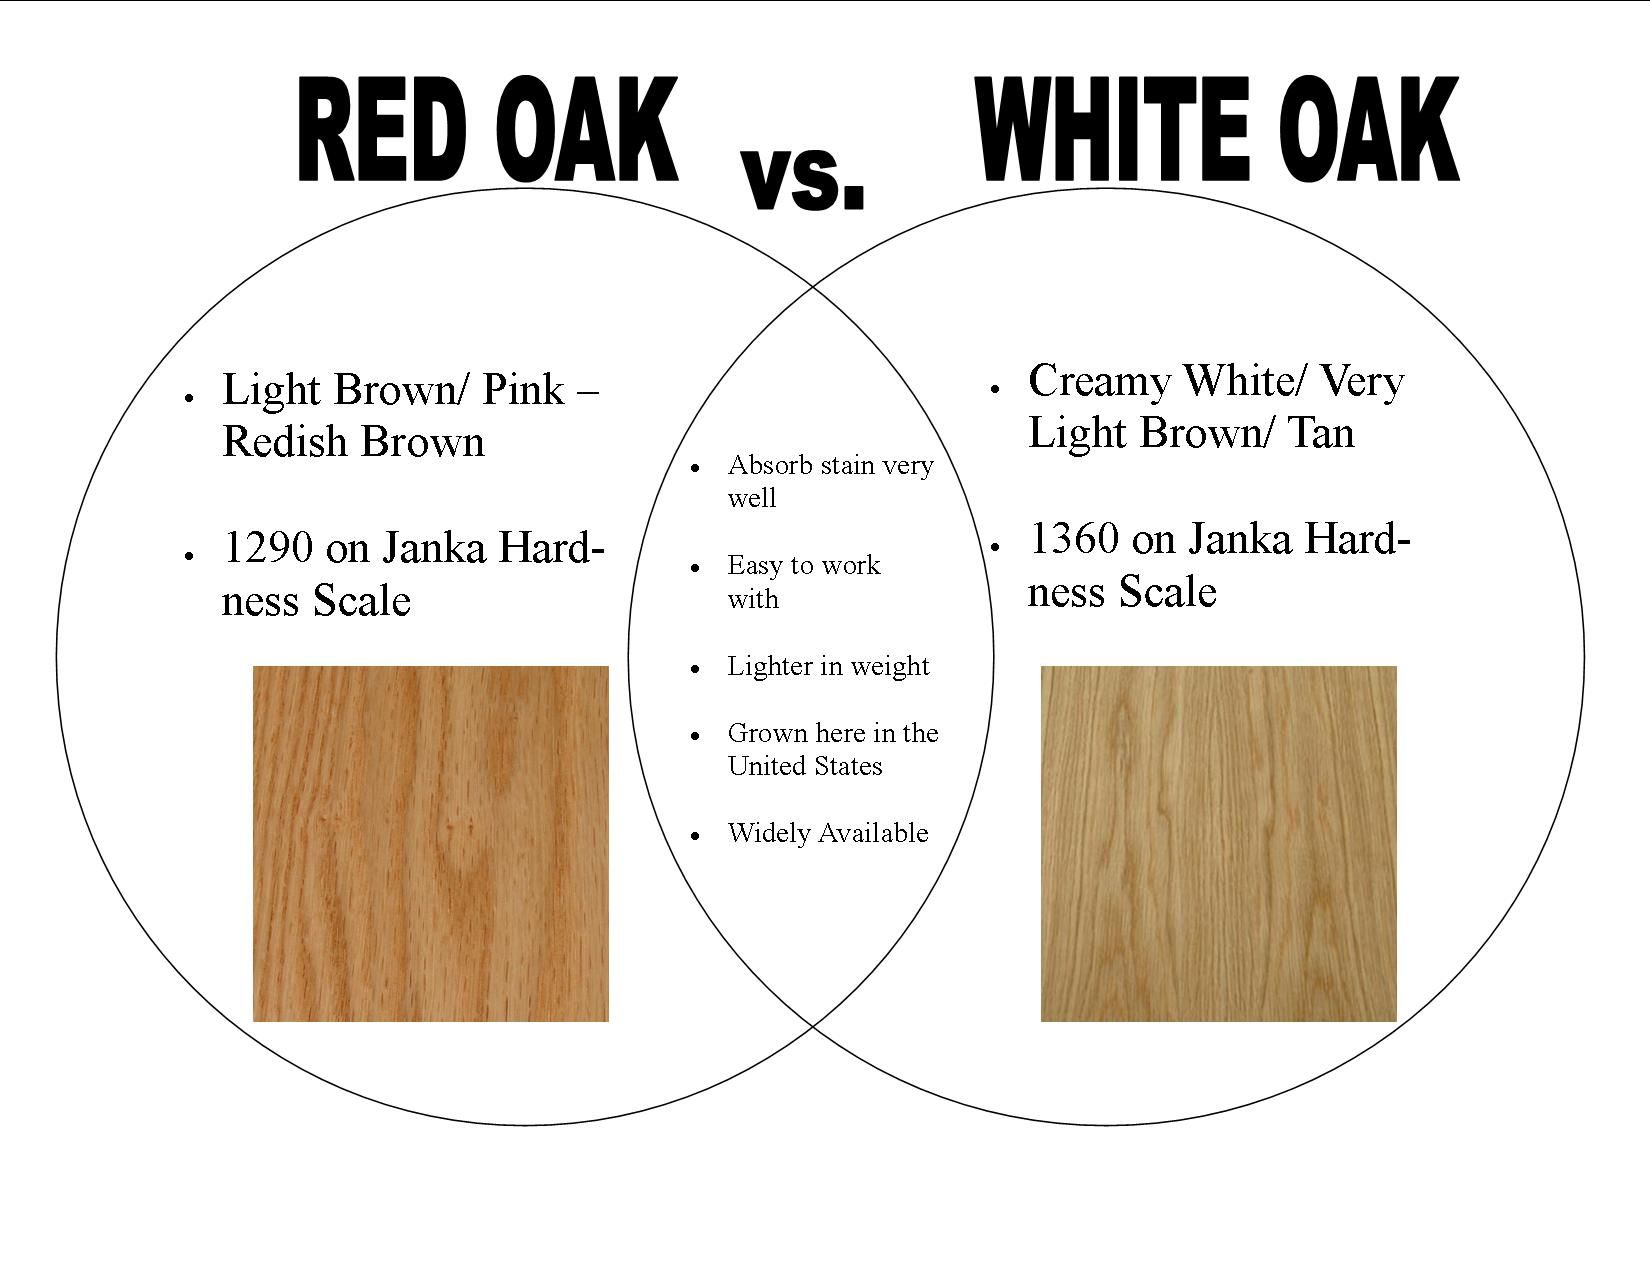 Image Result For How To Make Red Oak Look Like White Oak Red Oak Wood Red Oak Wood Floors Oak Wood Floors